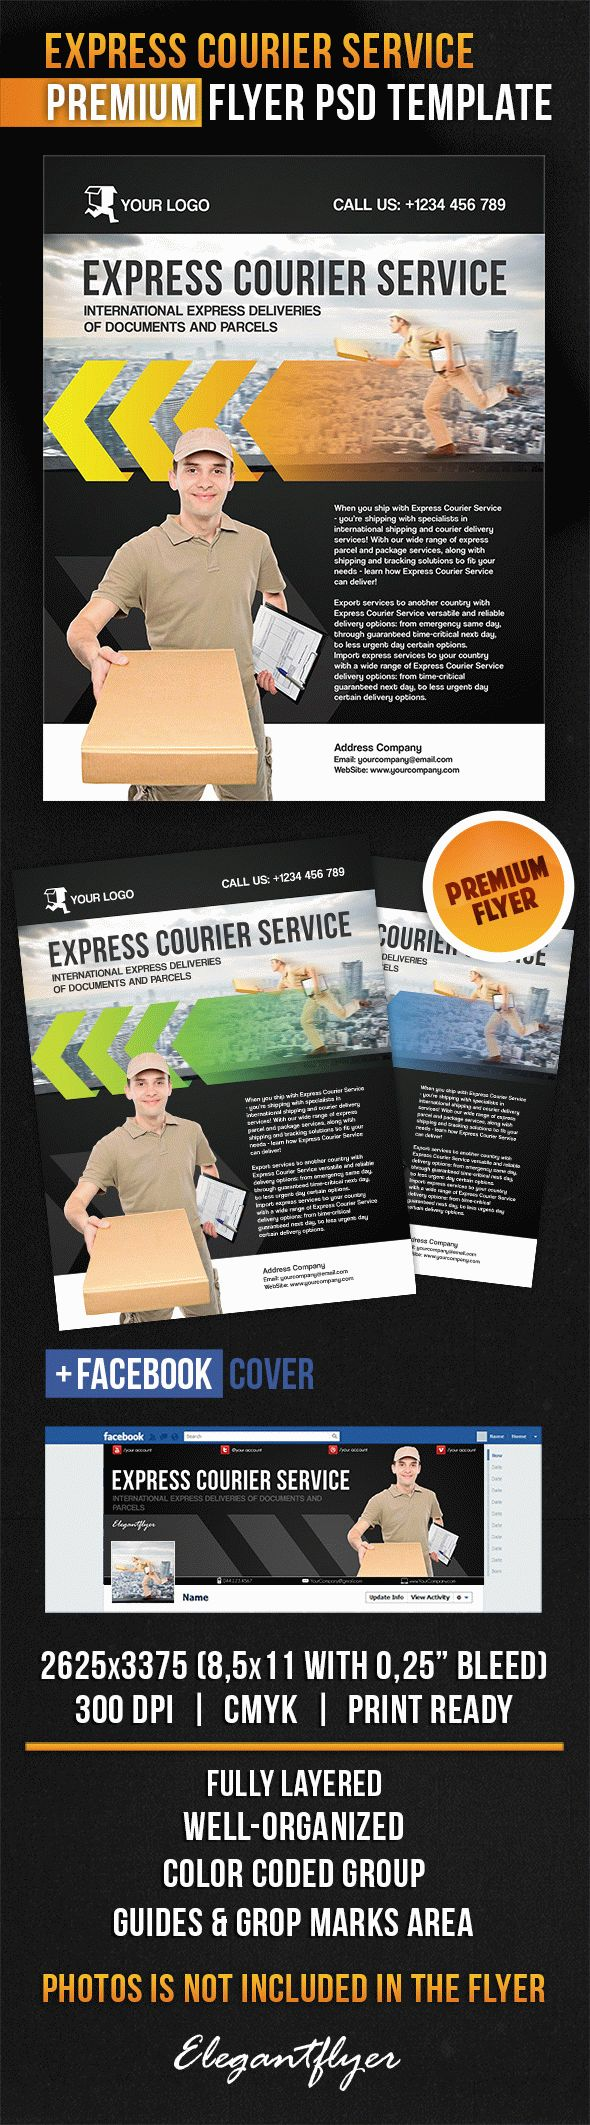 Express Courier Service – Flyer PSD Template + Facebook Cover